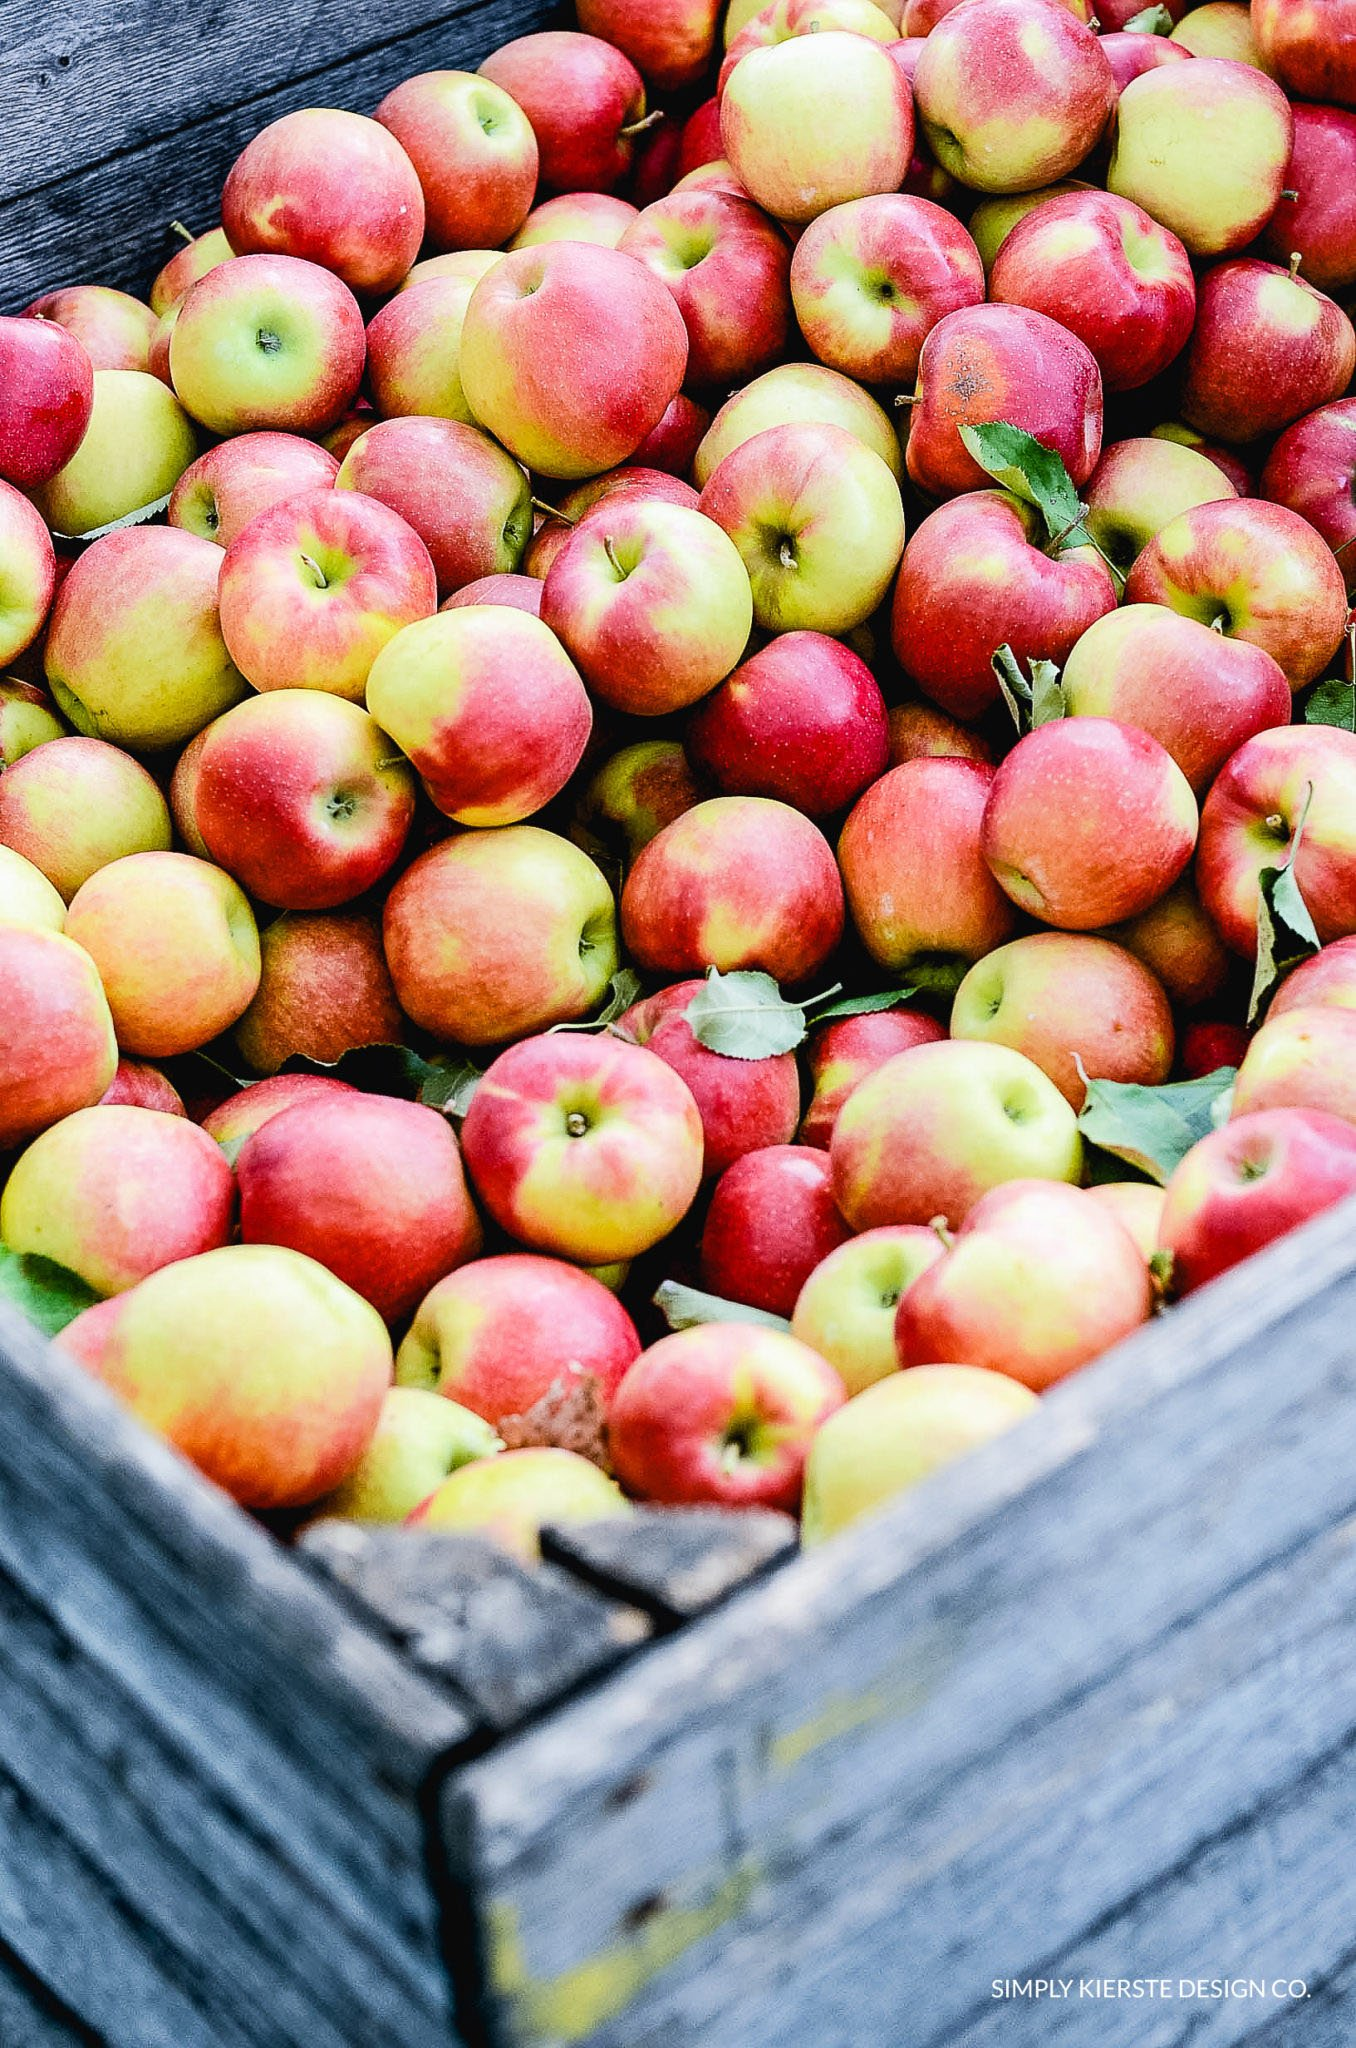 Apple Picking | Apple Farm | Fall Family Tradition | simplykierste.com